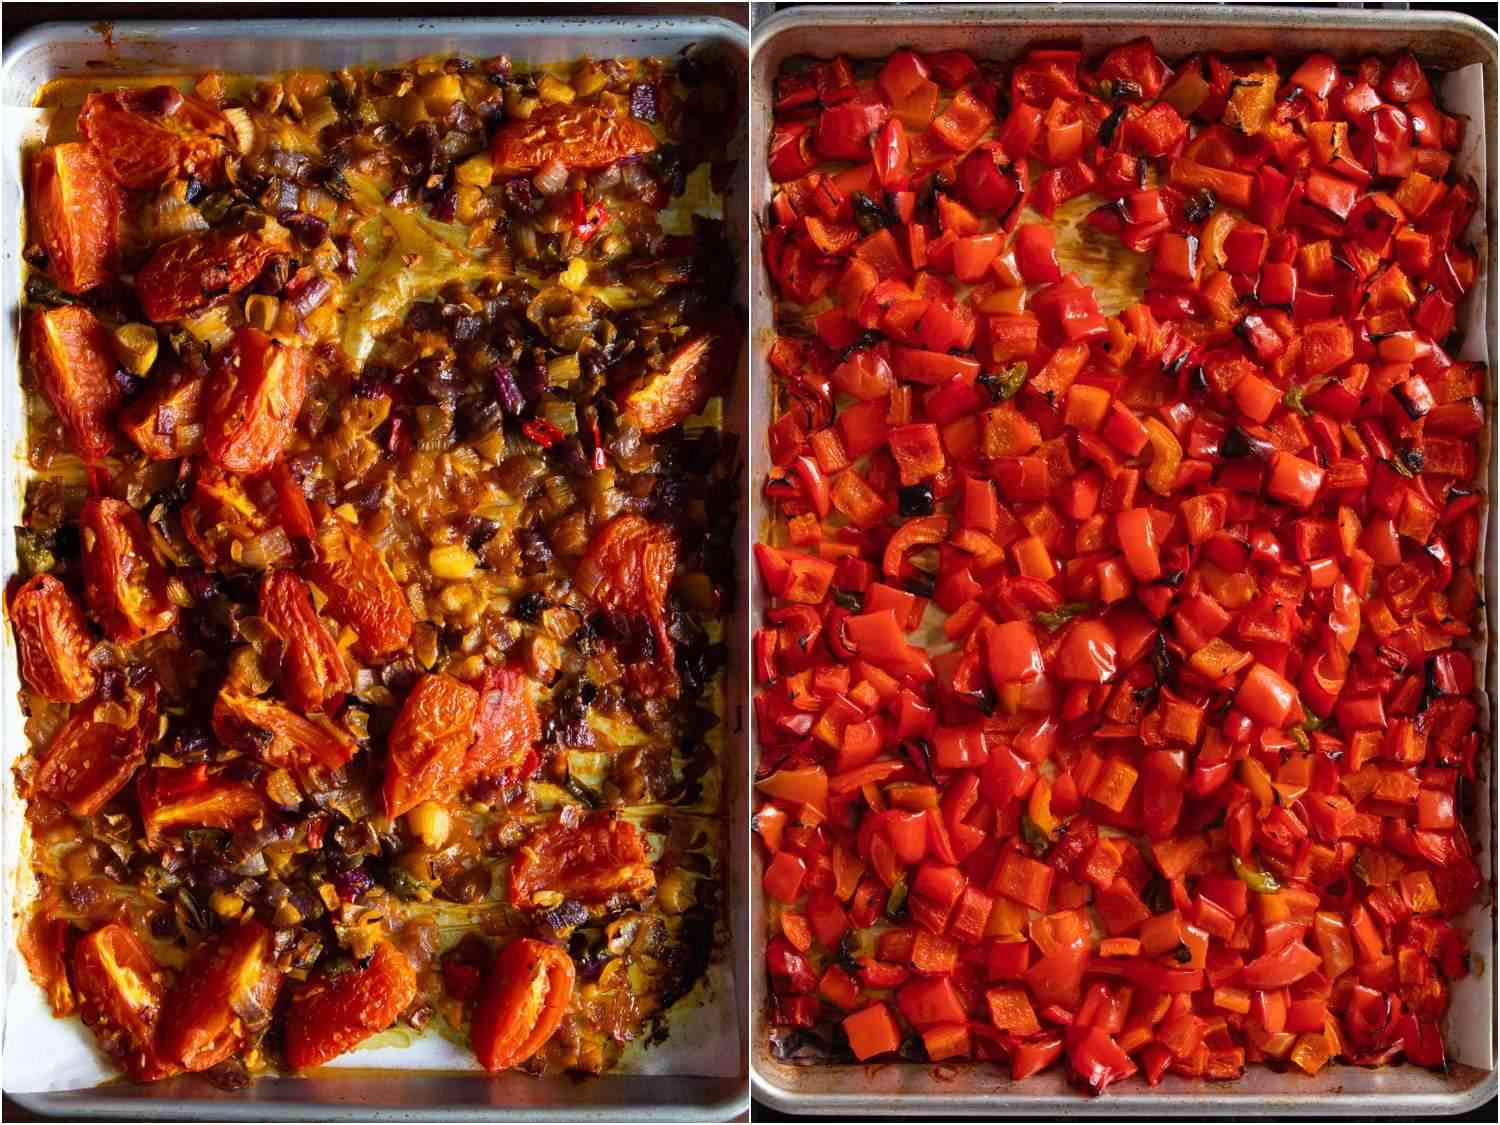 Some of obe ata's core ingredients, including red peppers, tomatoes, and onions, all diced up on baking sheets and roasted in the oven.